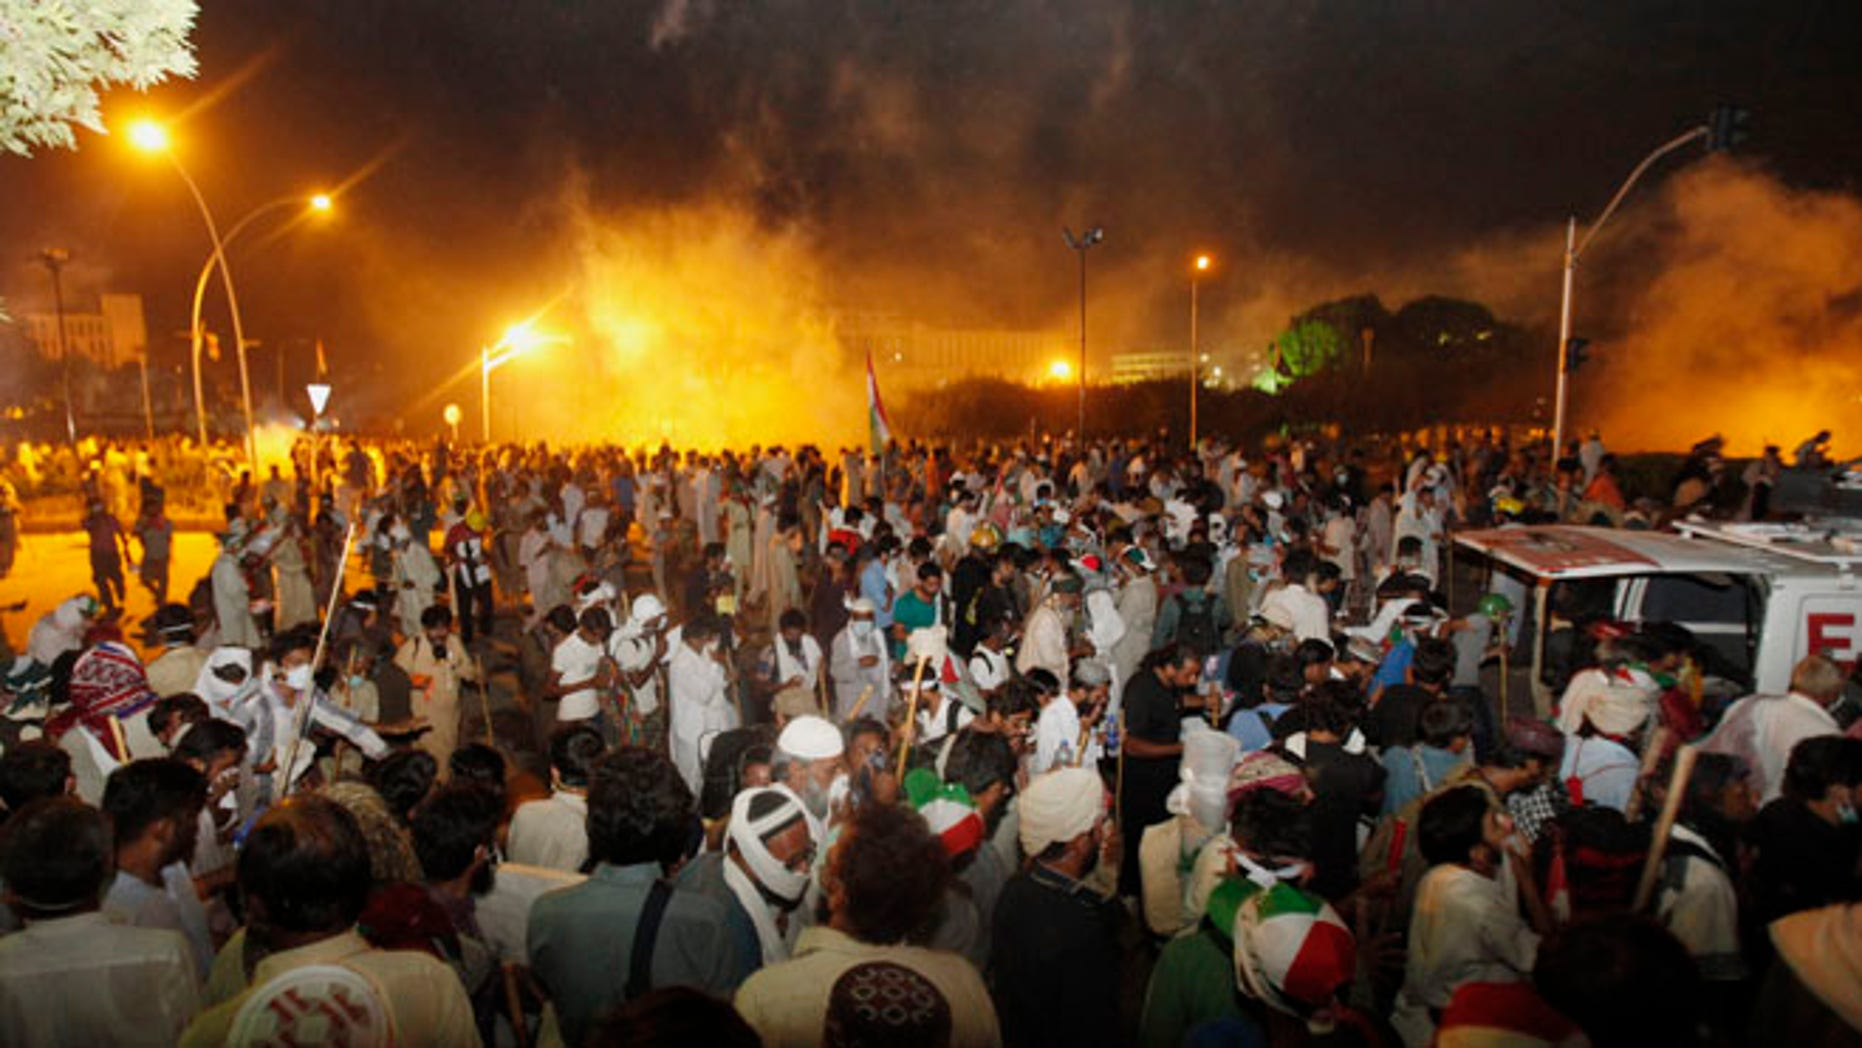 Aug 30, 2014: Pakistani protesters run after police fire tear gas during clashes near the prime minister's home in Islamabad, Pakistan. (AP)